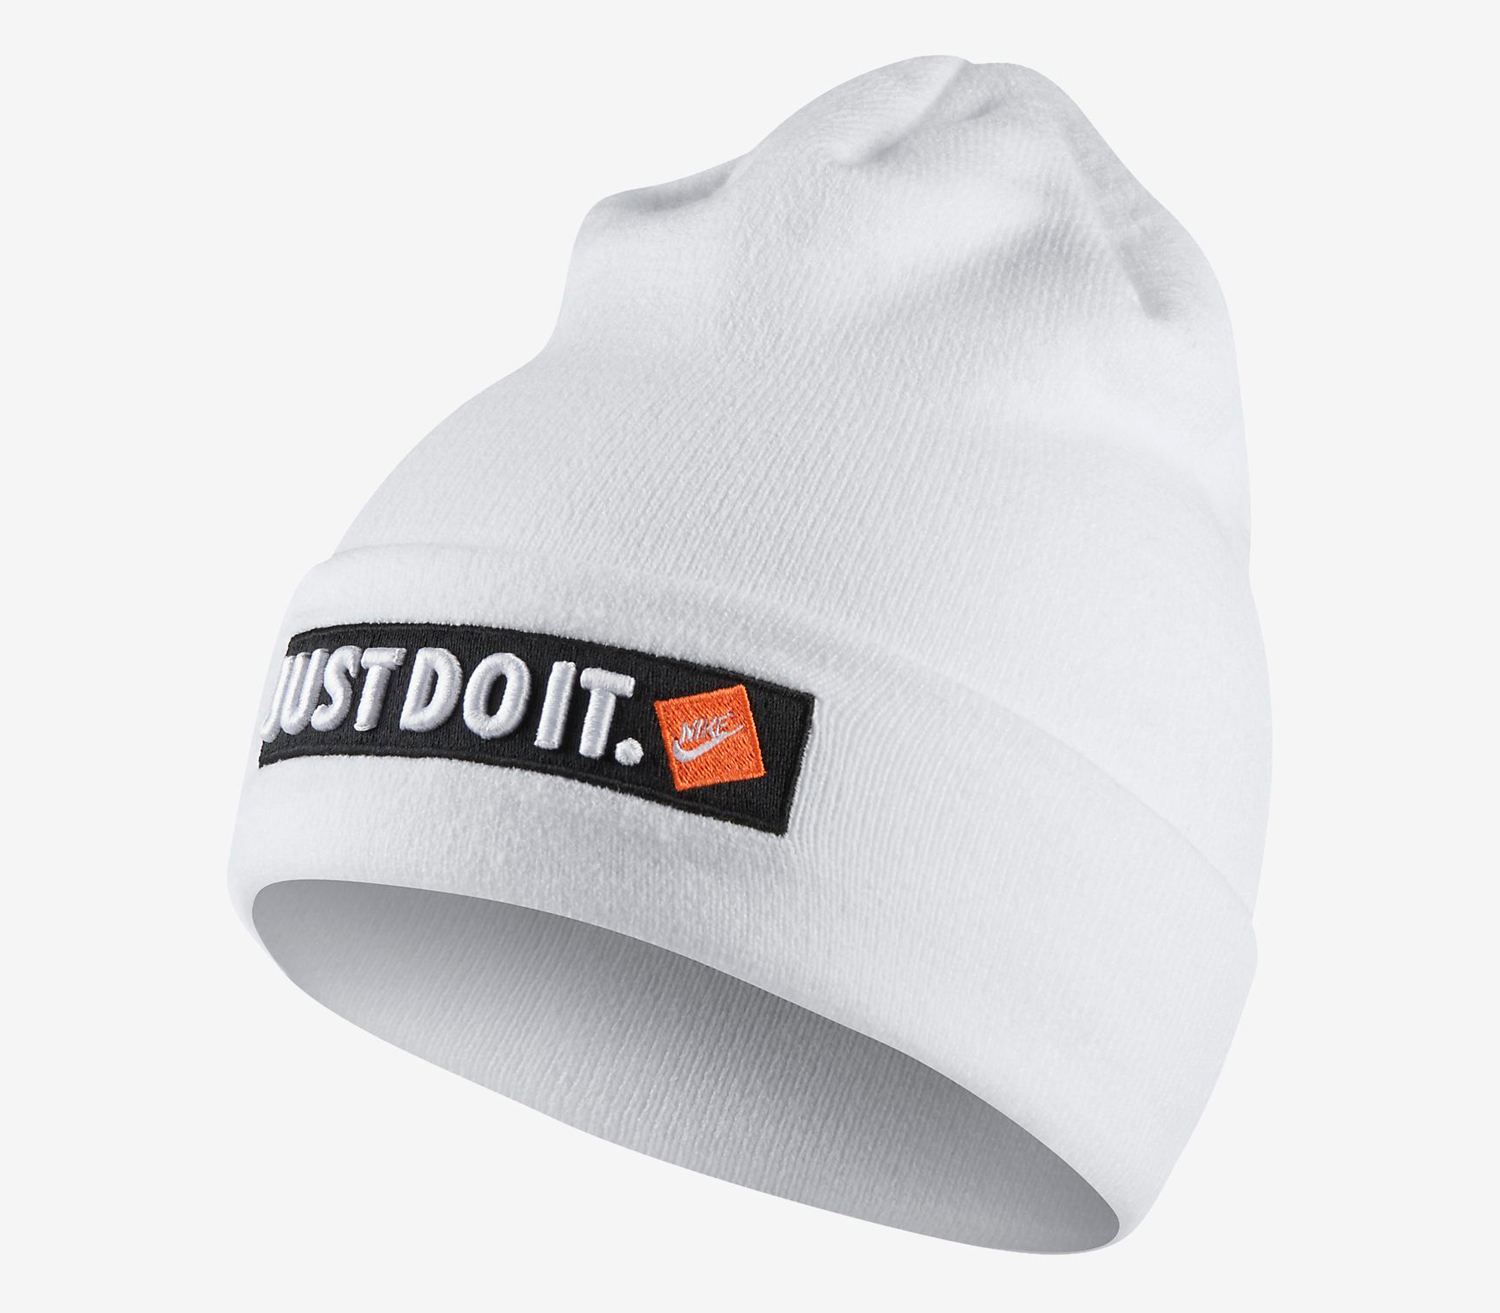 check out 73f19 eff0b nike-just-do-it-beanie-knit-hat-white